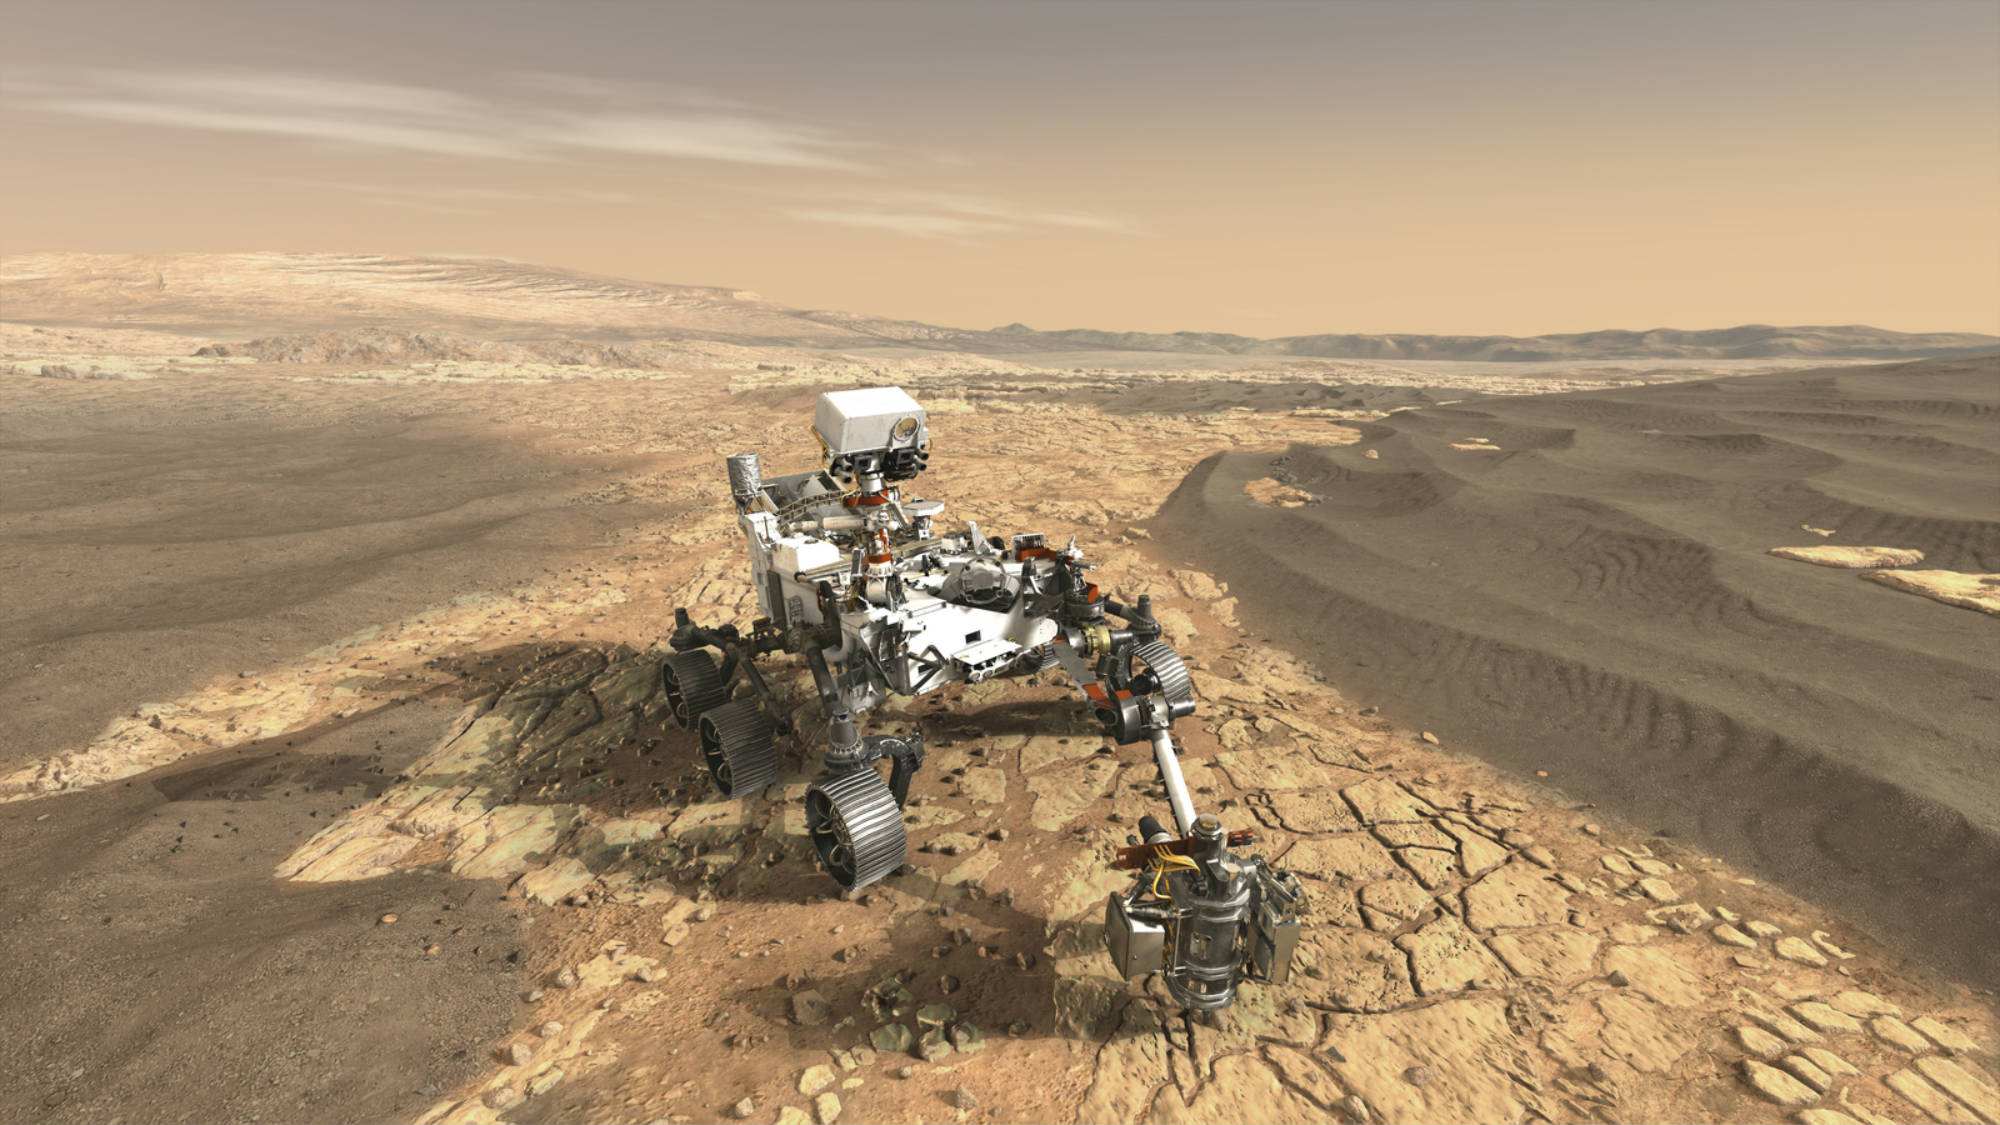 mars2020rover image